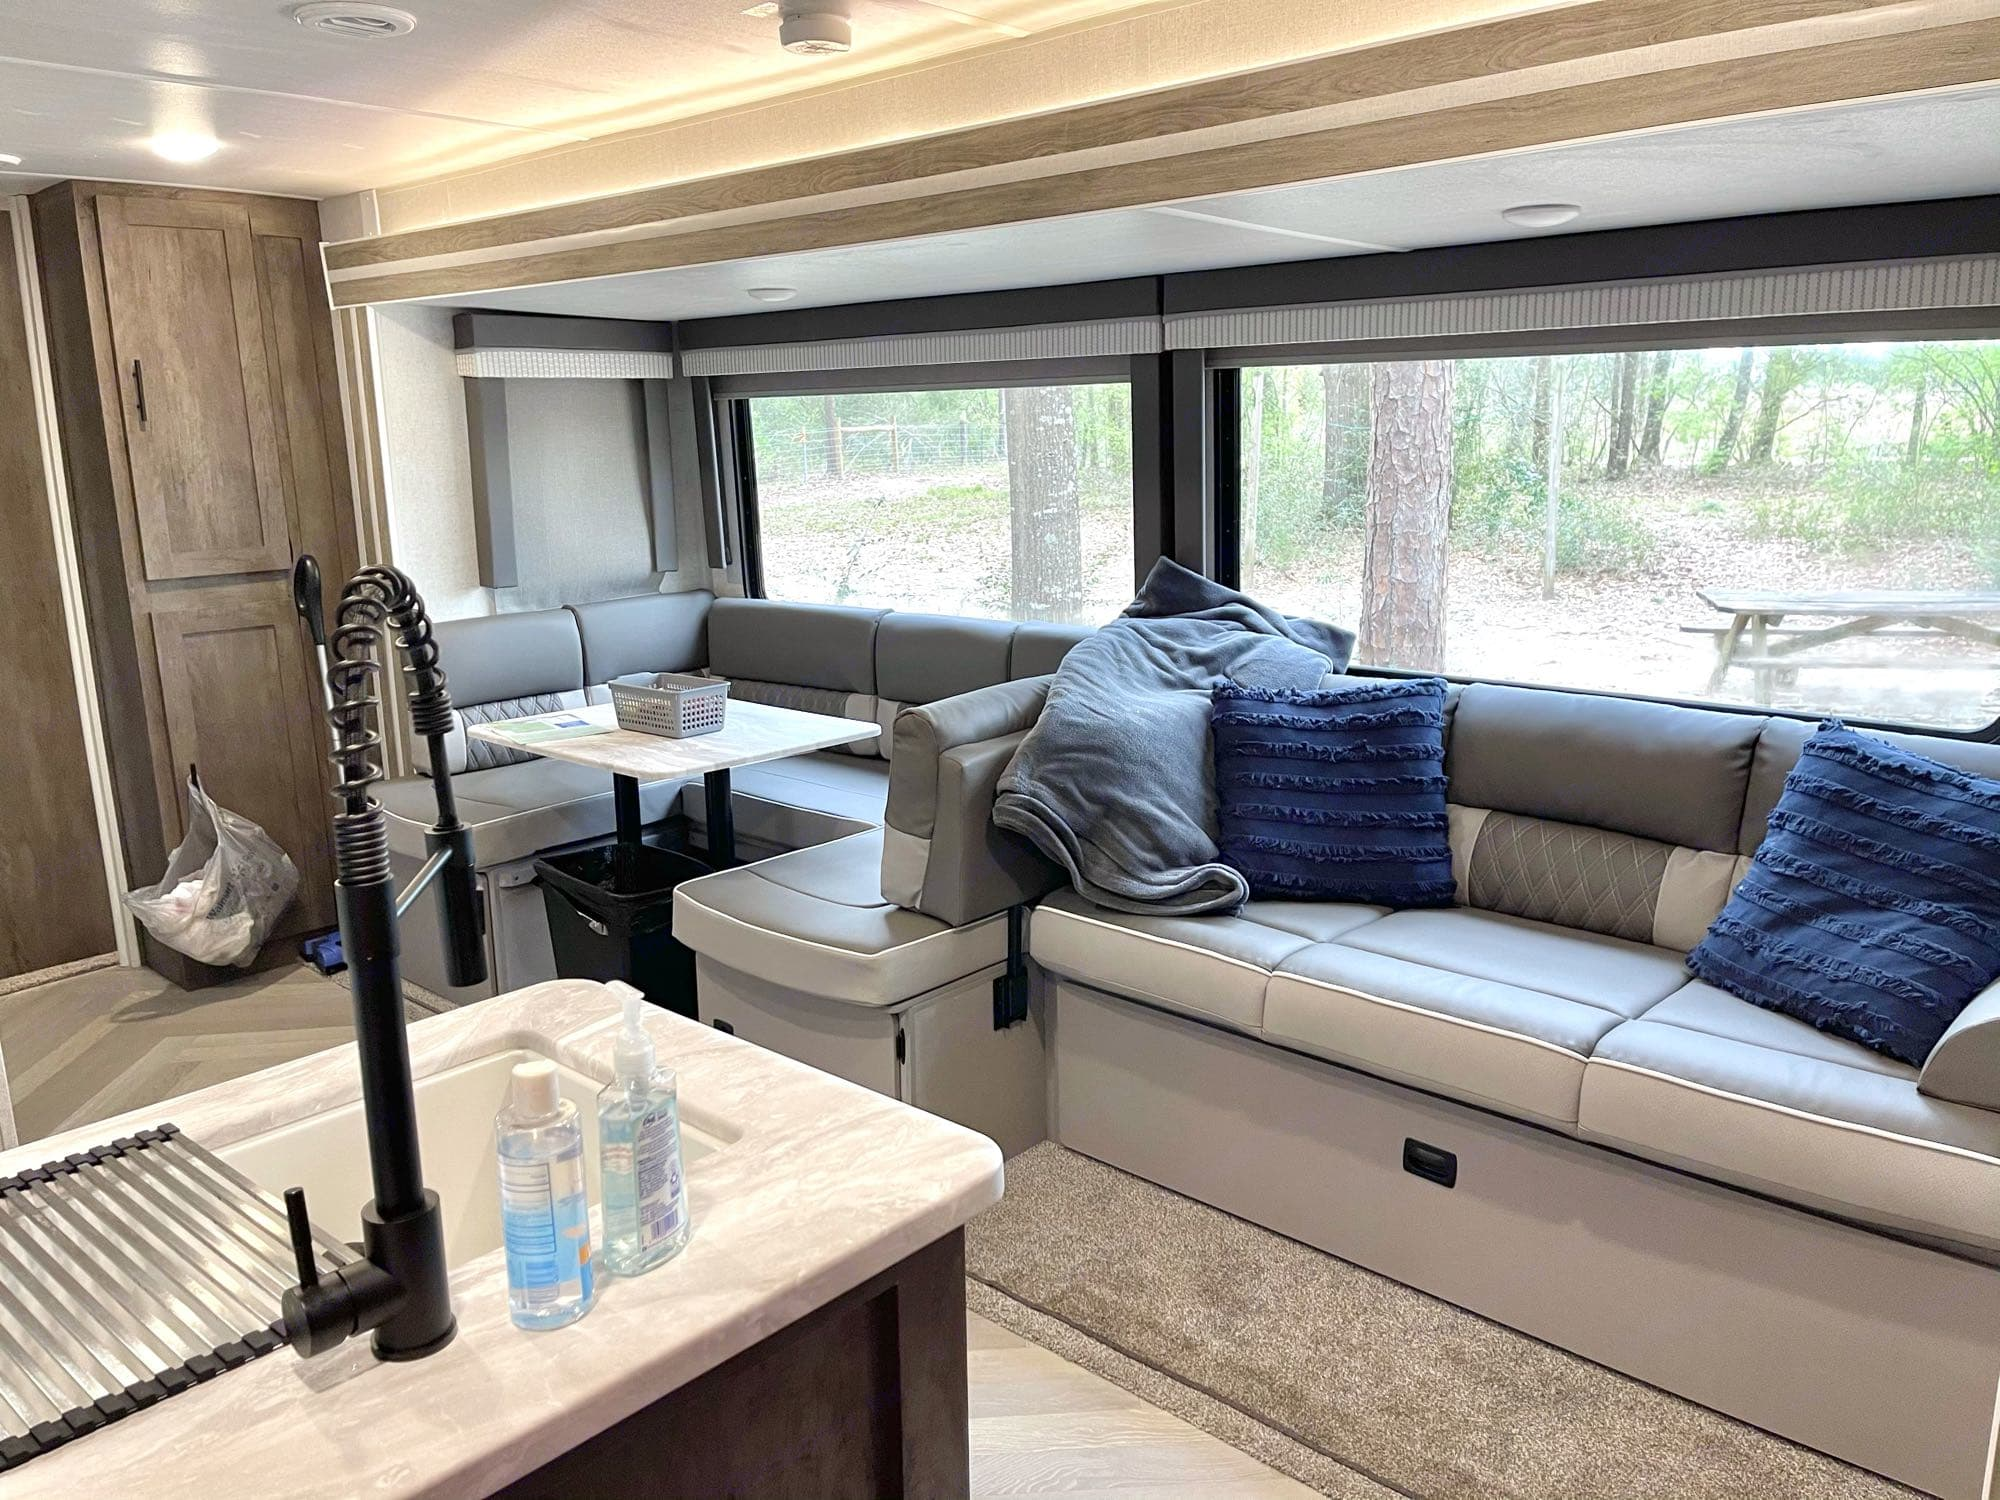 Couch and dinette fold out to beds for extra sleeping space. Forest River Salem 2021